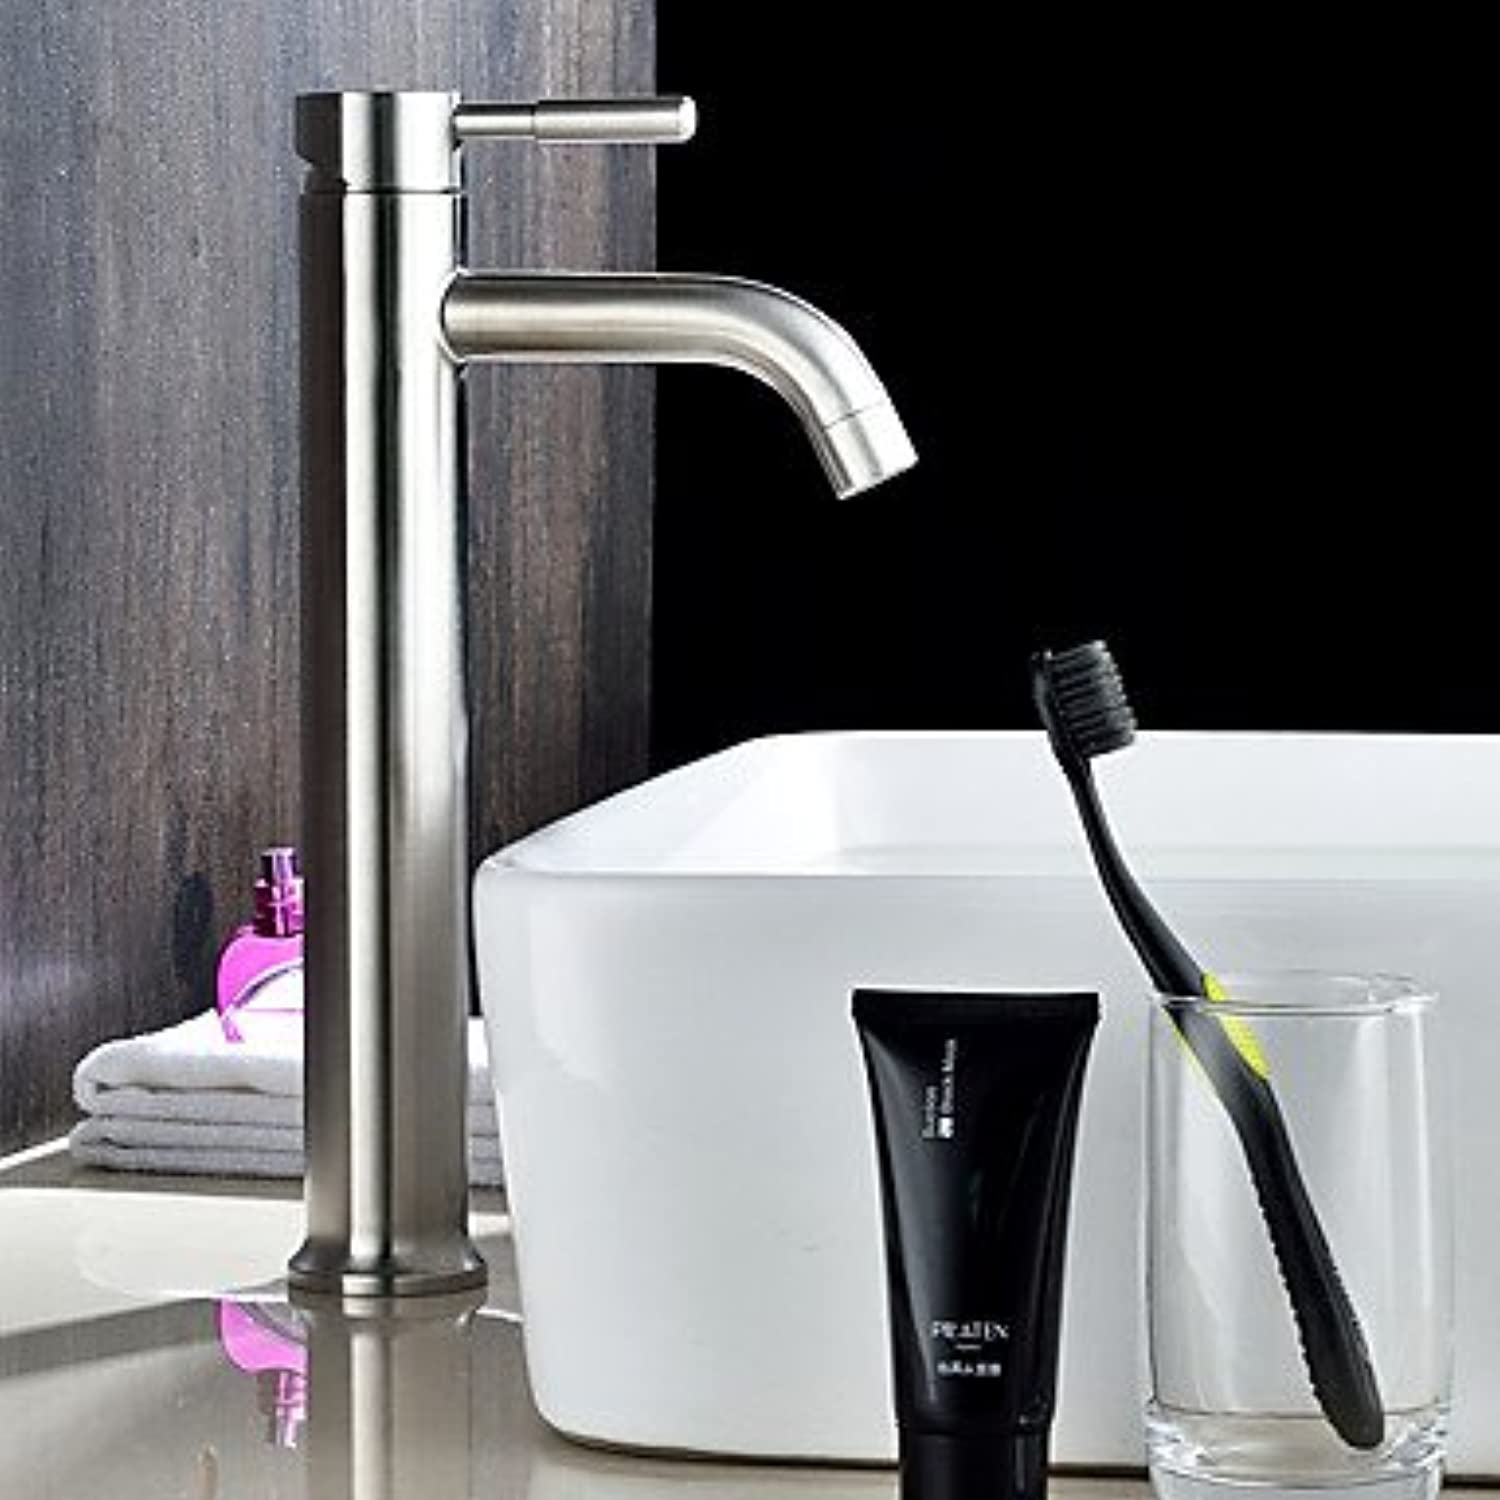 ZYT Contemporary Vessel Widespread with Ceramic Valve Single Handle One Hole for Nickel Brushed , Bathroom Sink Faucet